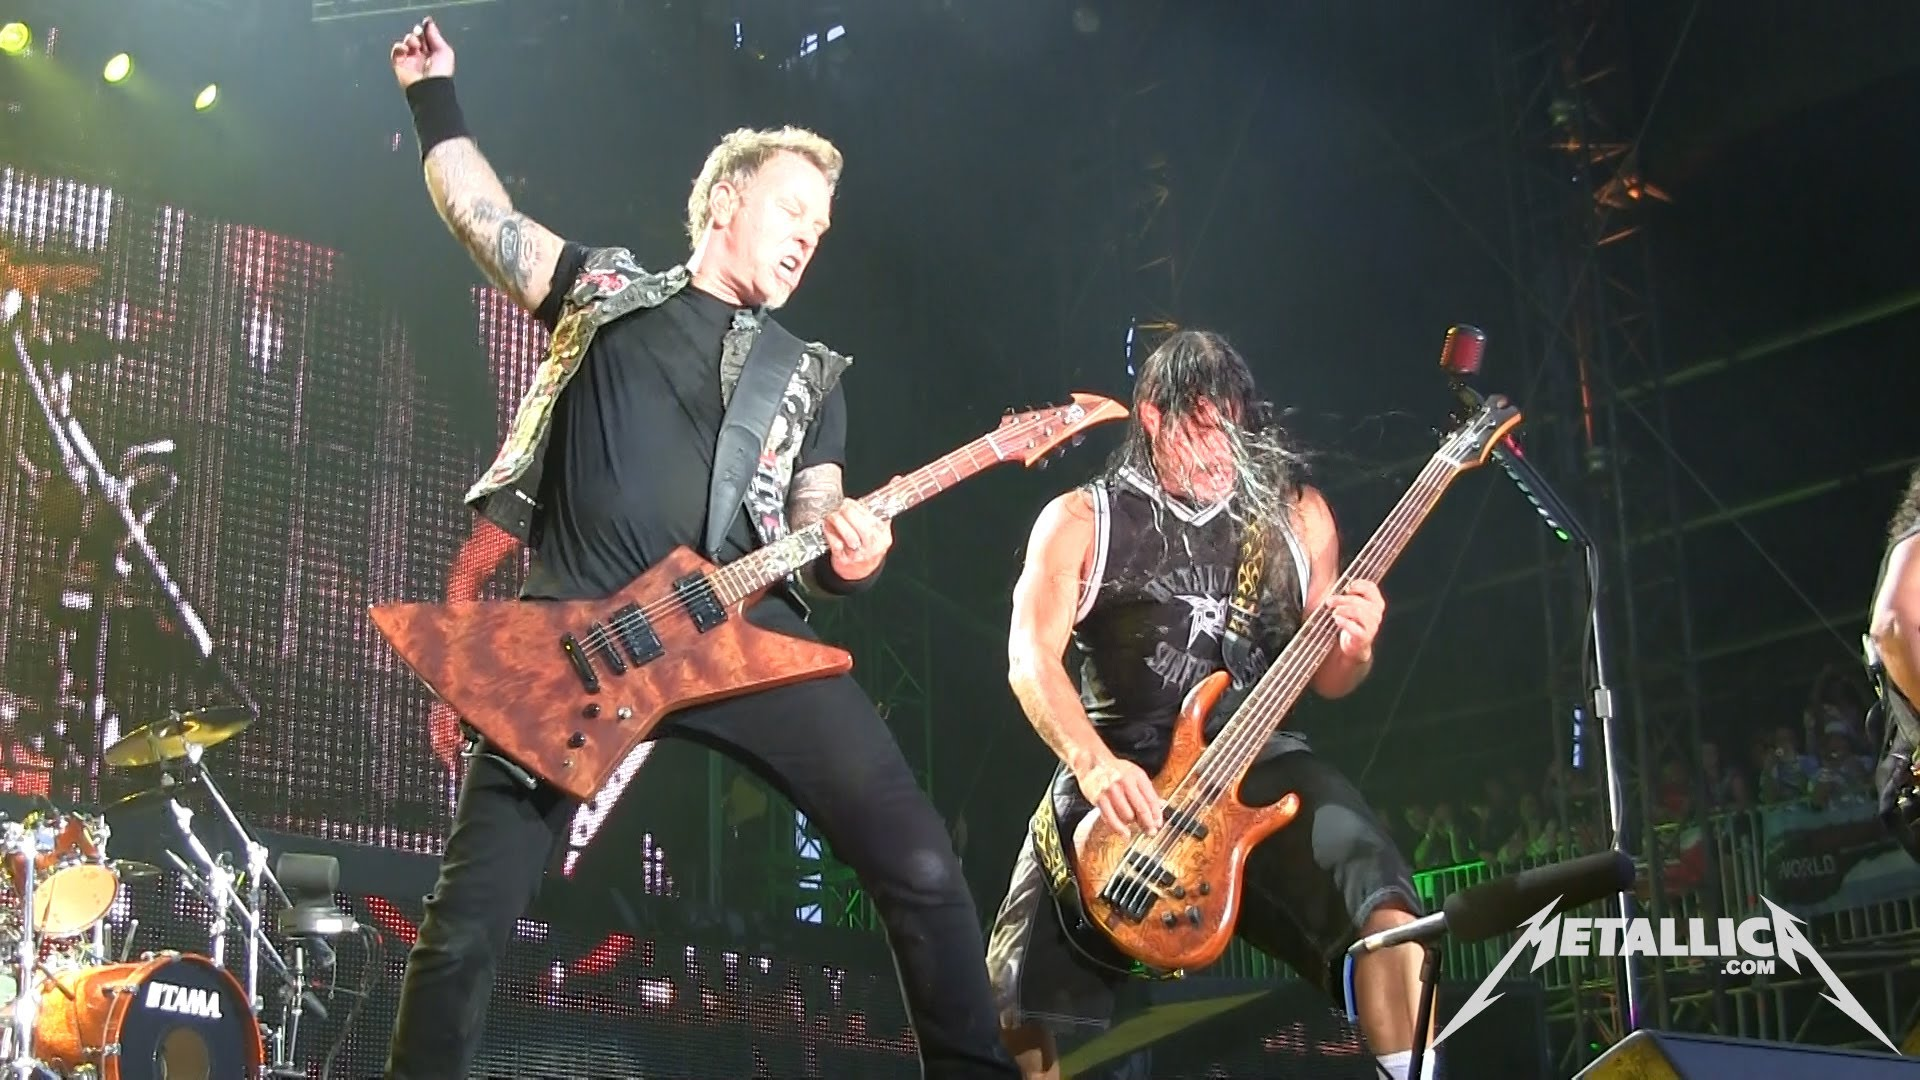 Metallica Carpe Diem Baby & The Day That Never Comes (MetOnTour - Orion Music More - 2013)